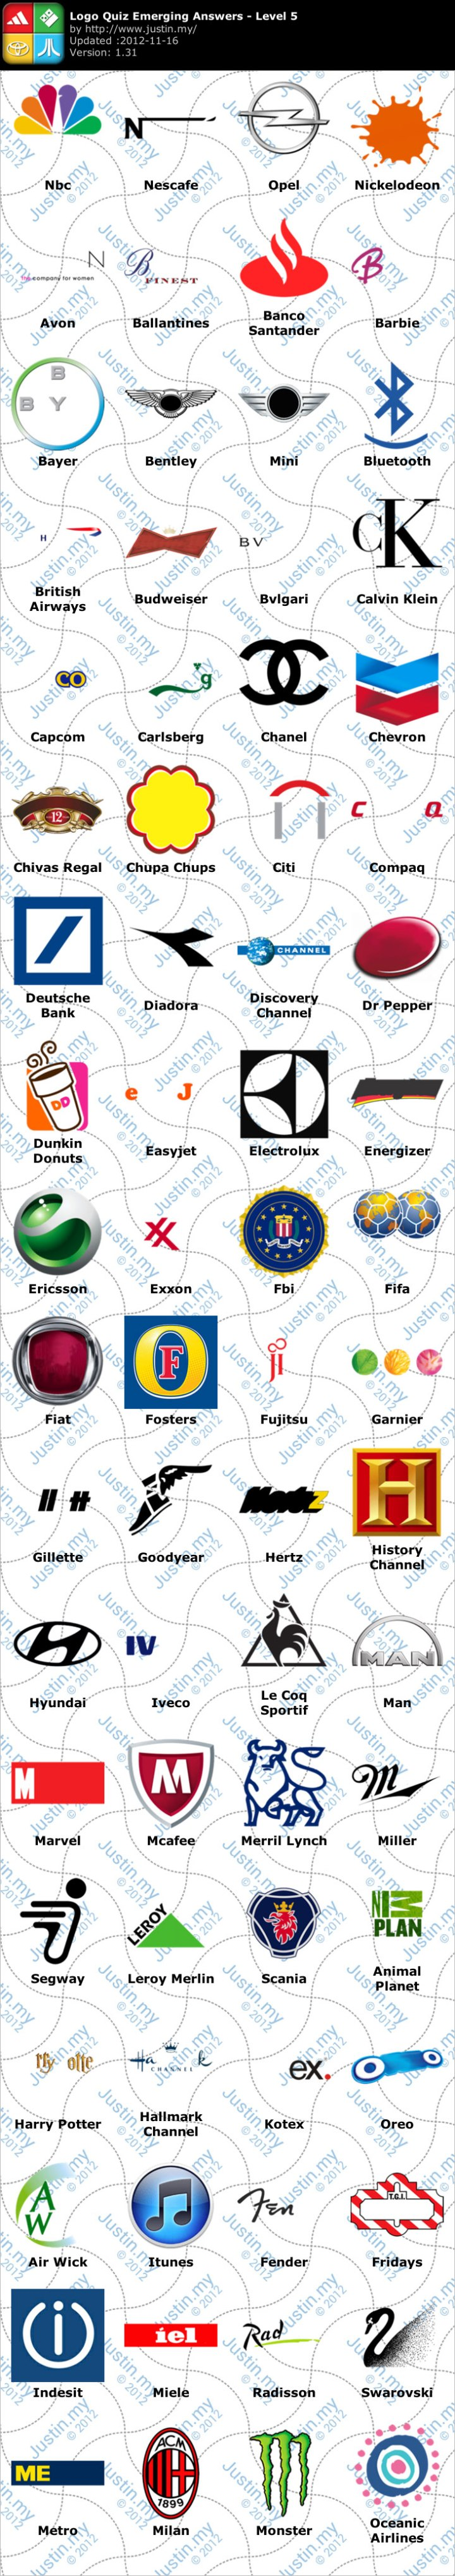 Logo Quiz Ultimate Logo Quiz Emerging Games Level 5